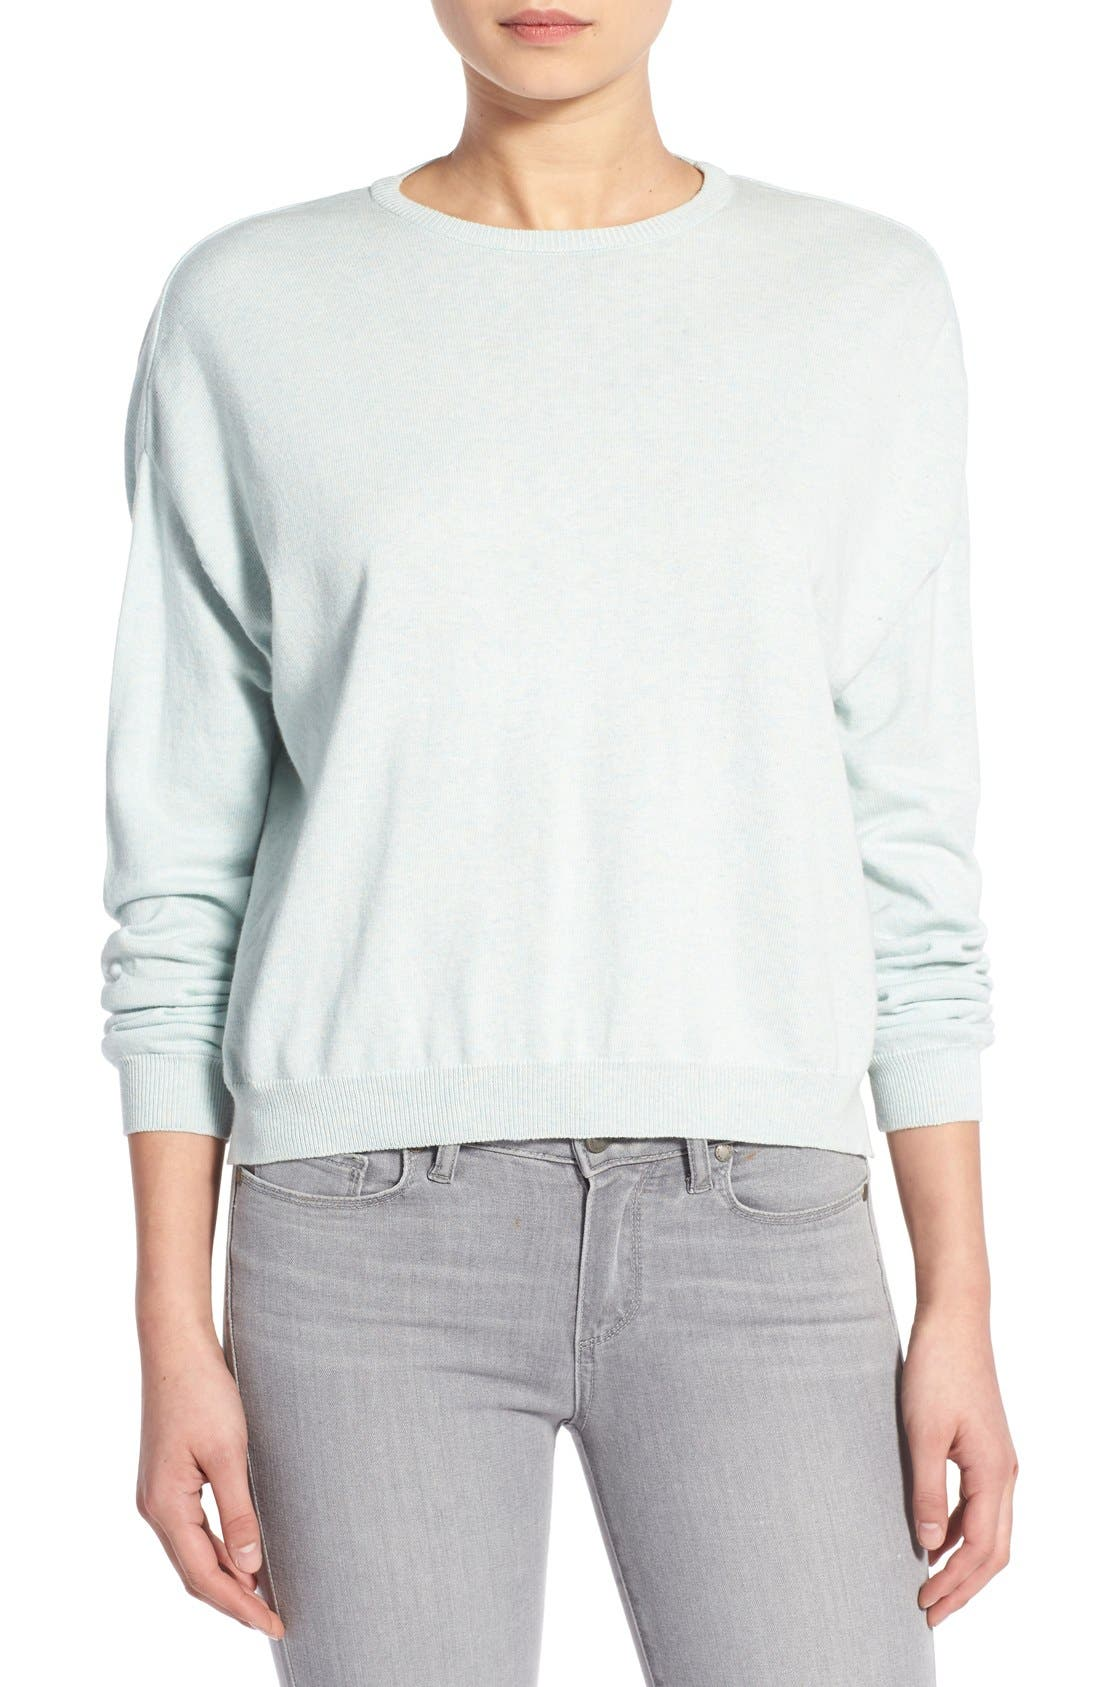 Alternate Image 1 Selected - Rebecca Minkoff 'Solid Ponder' Sweater